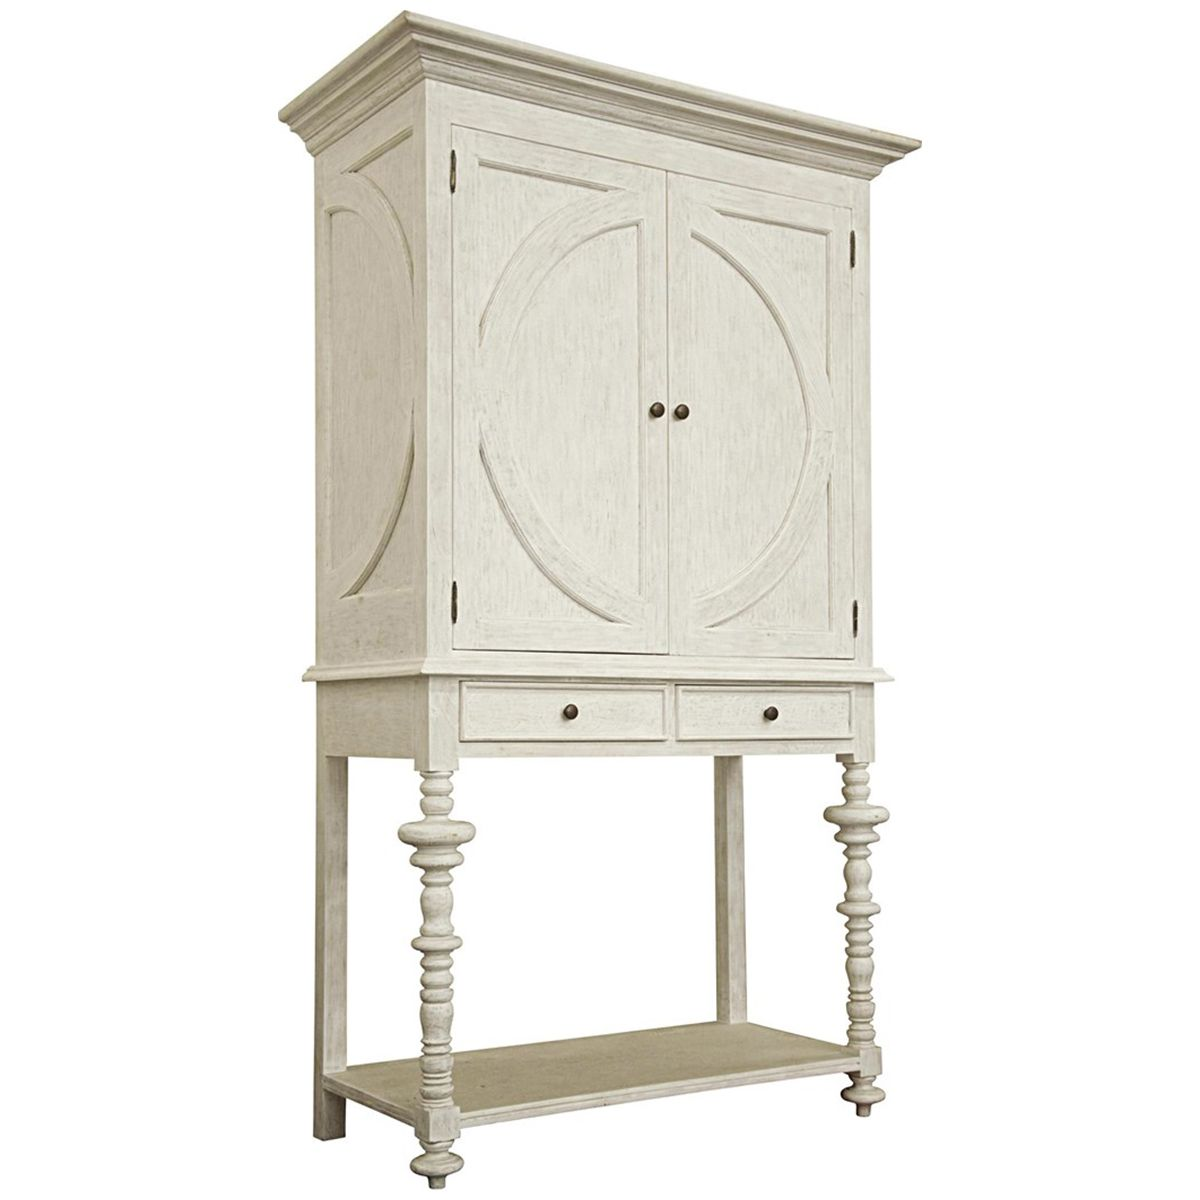 Noir Ferret Wine Cabinet, White Wash GARM118WH